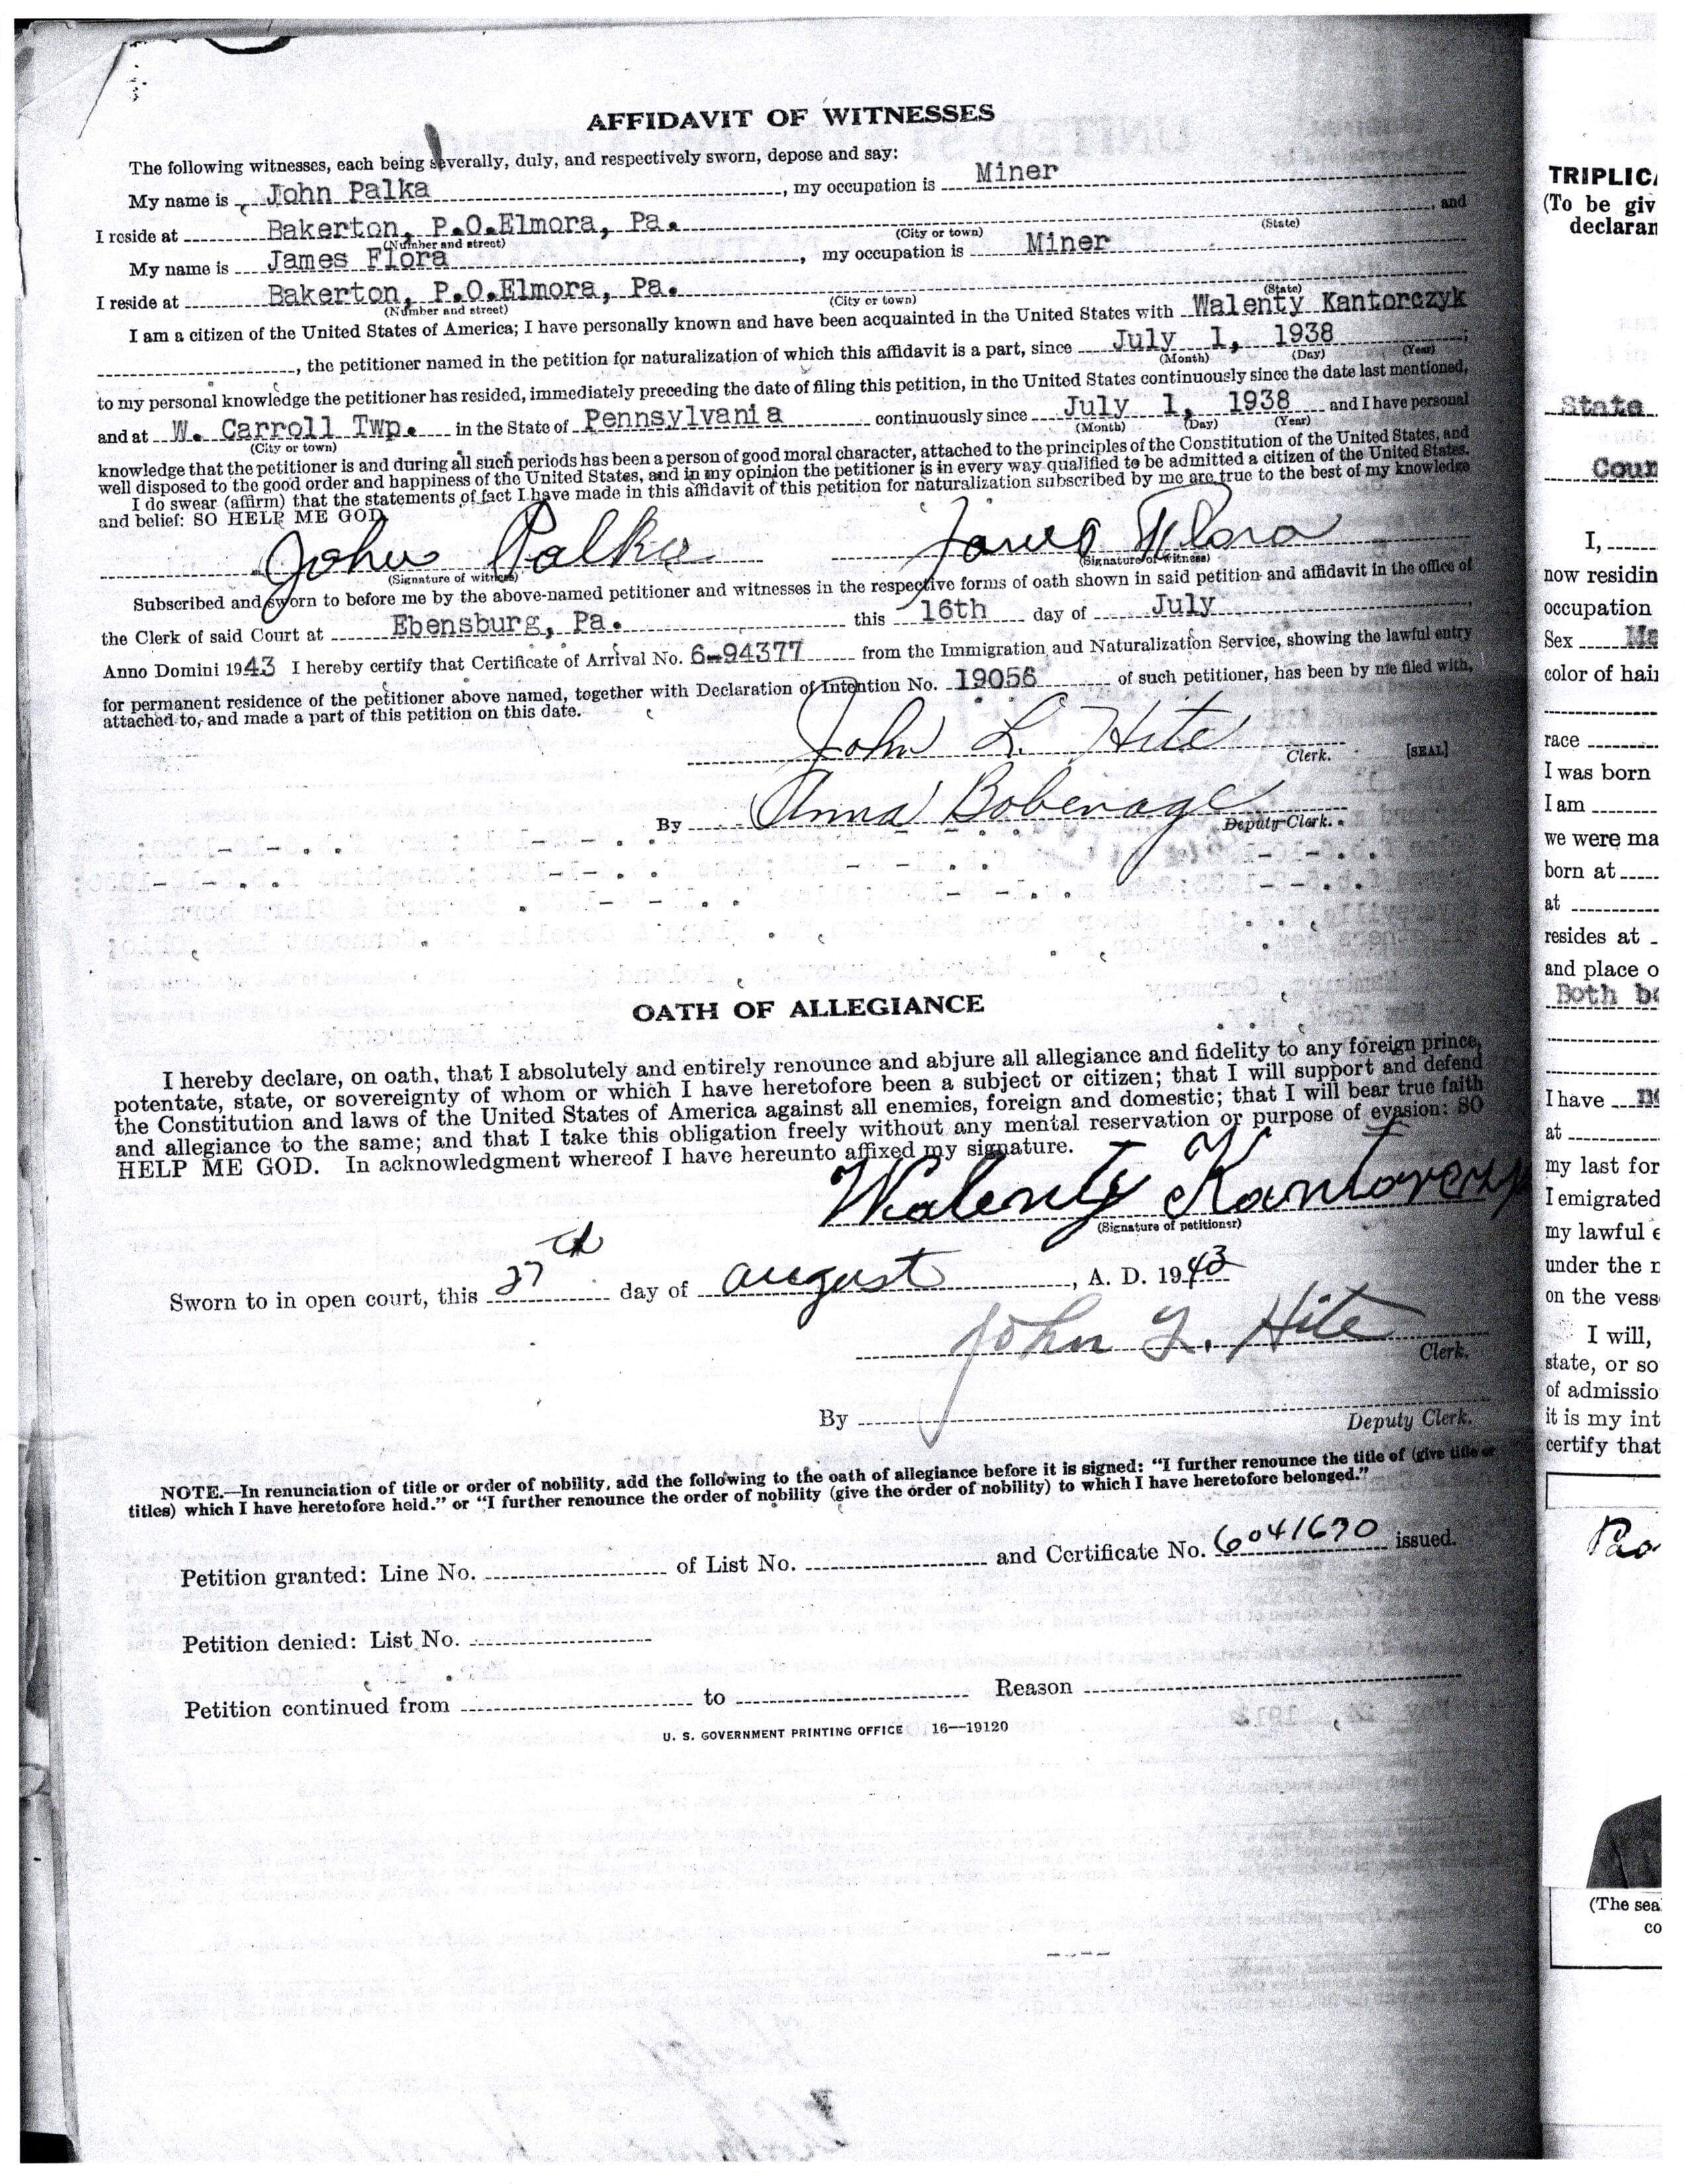 1943-08-25 Affidavit of Witnesses (Naturalization) Walenty Kantorczyk